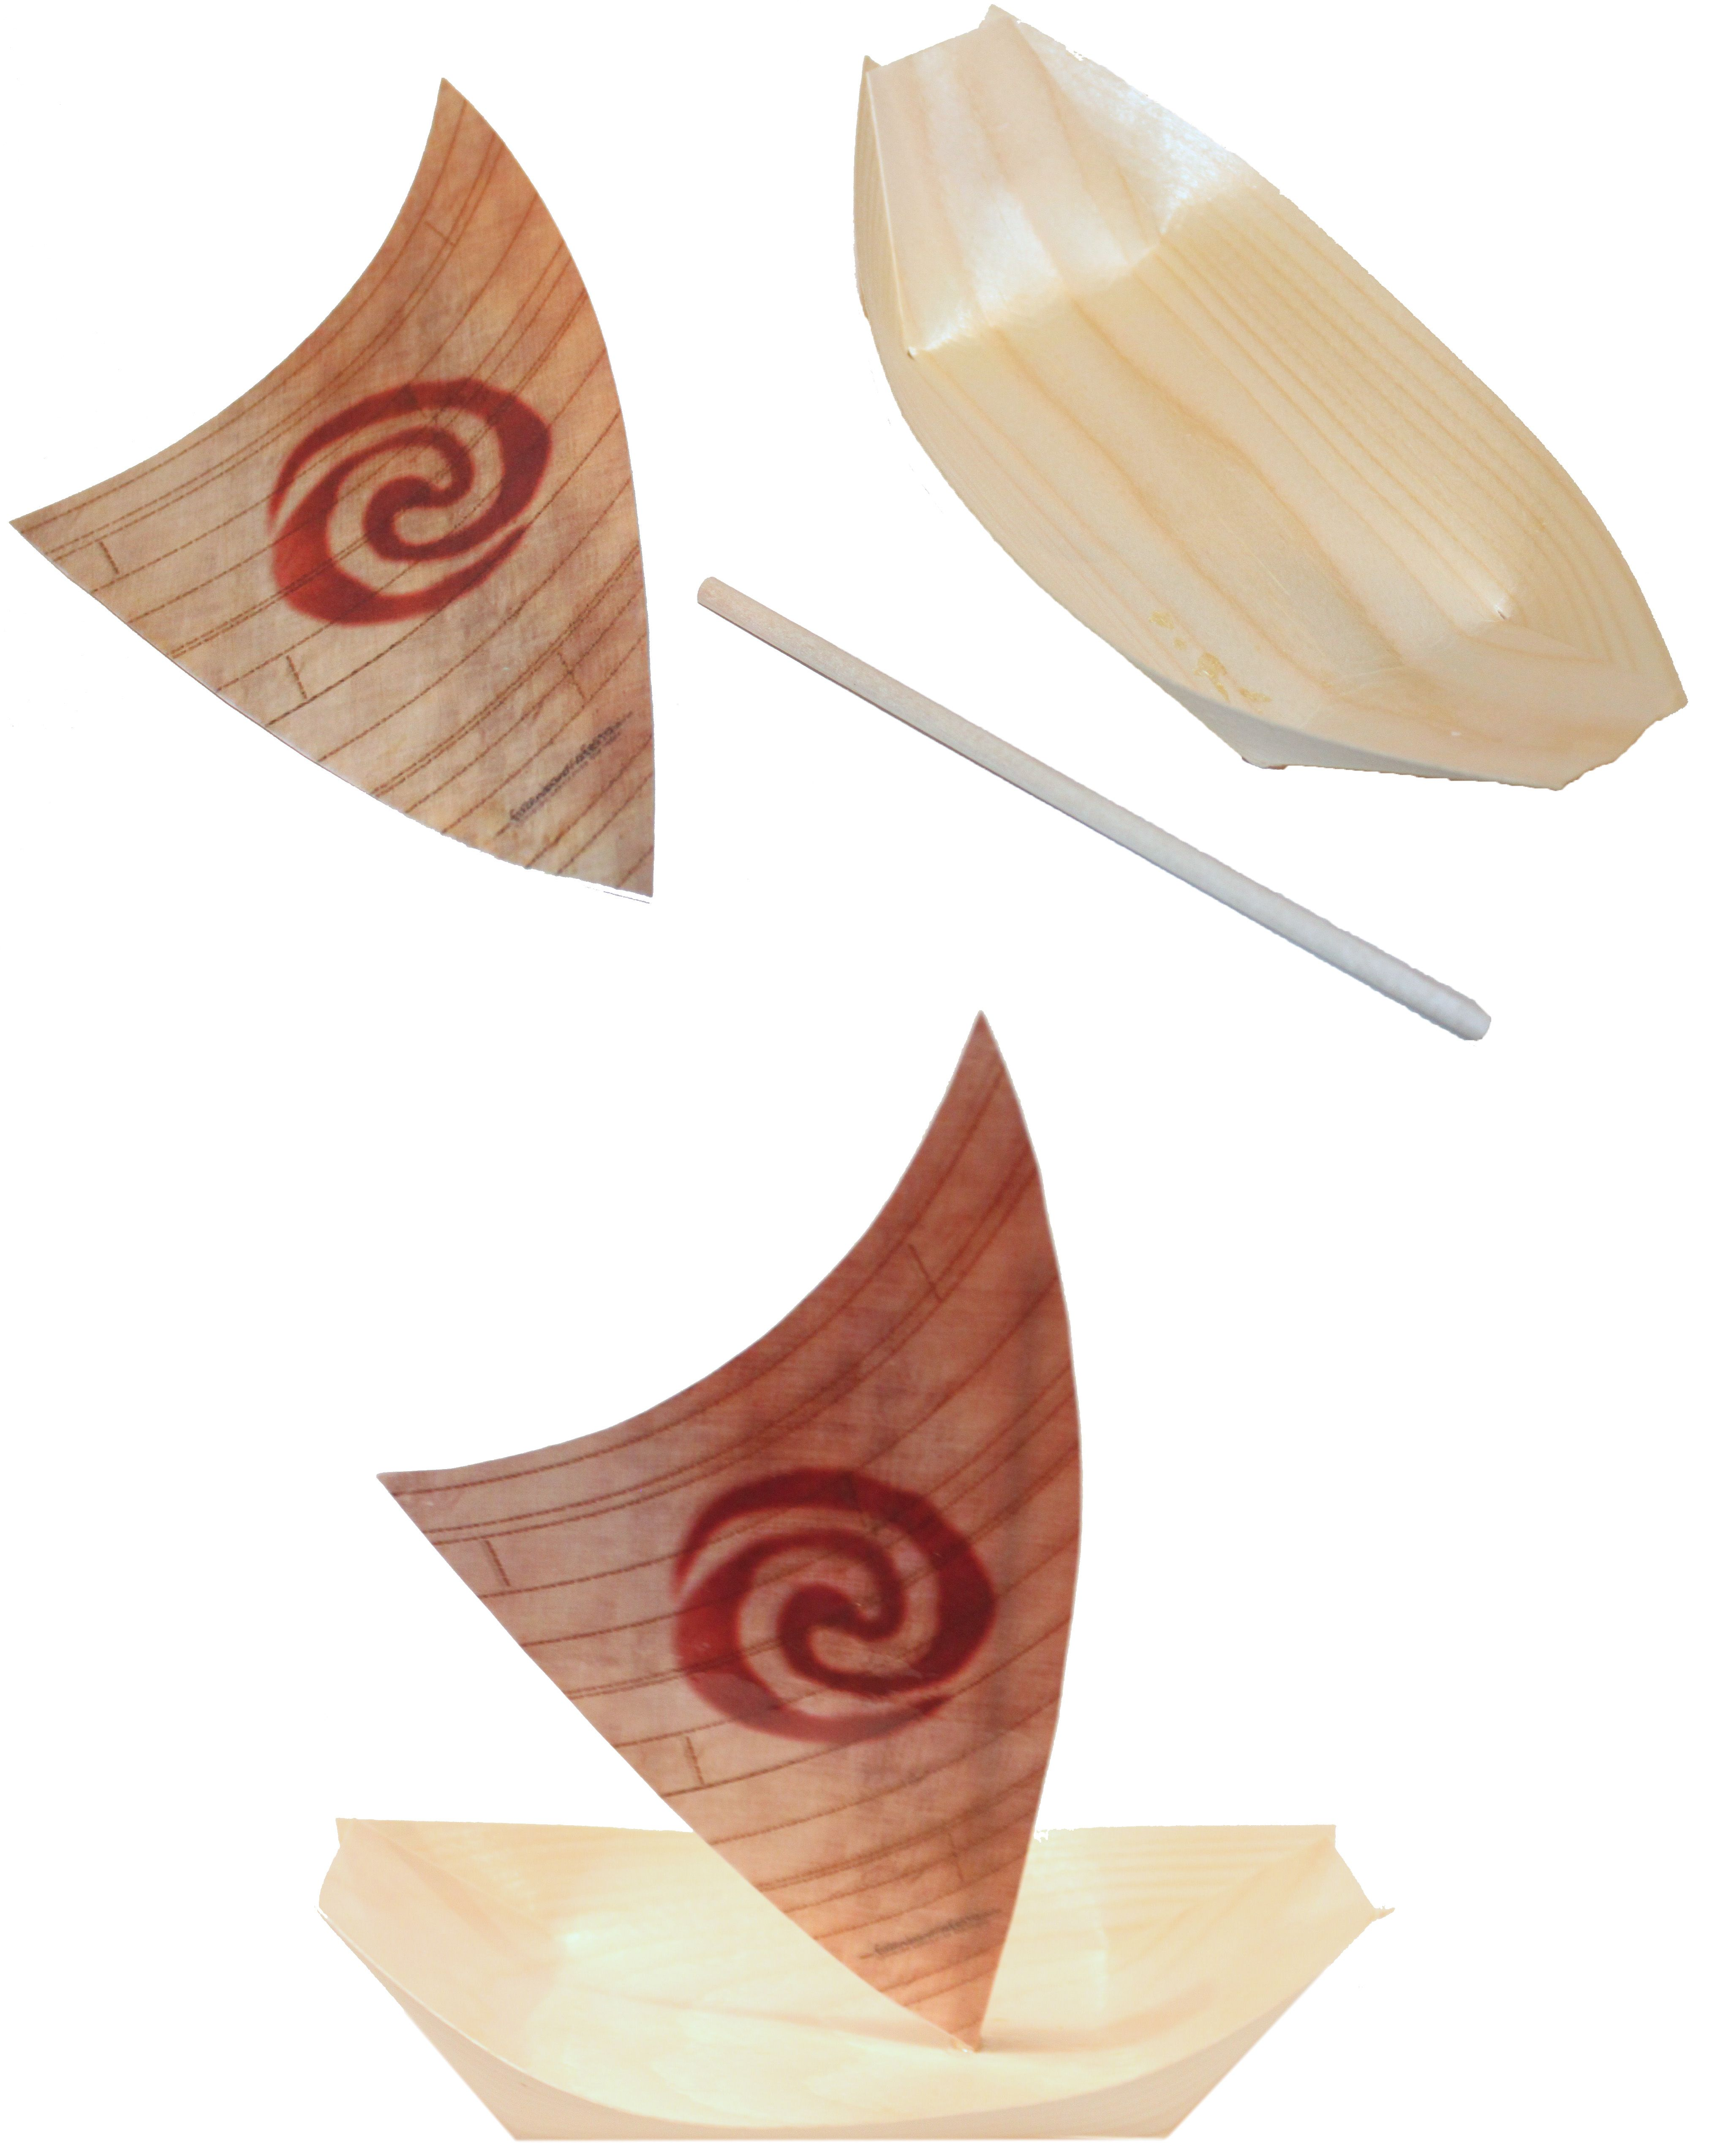 Moana Canoe Craft Link To Print The Sail On This Board I Printed Double Sided Then Laminated It Pine Food Serv Moana Birthday Party Party Stores Moana Canoe